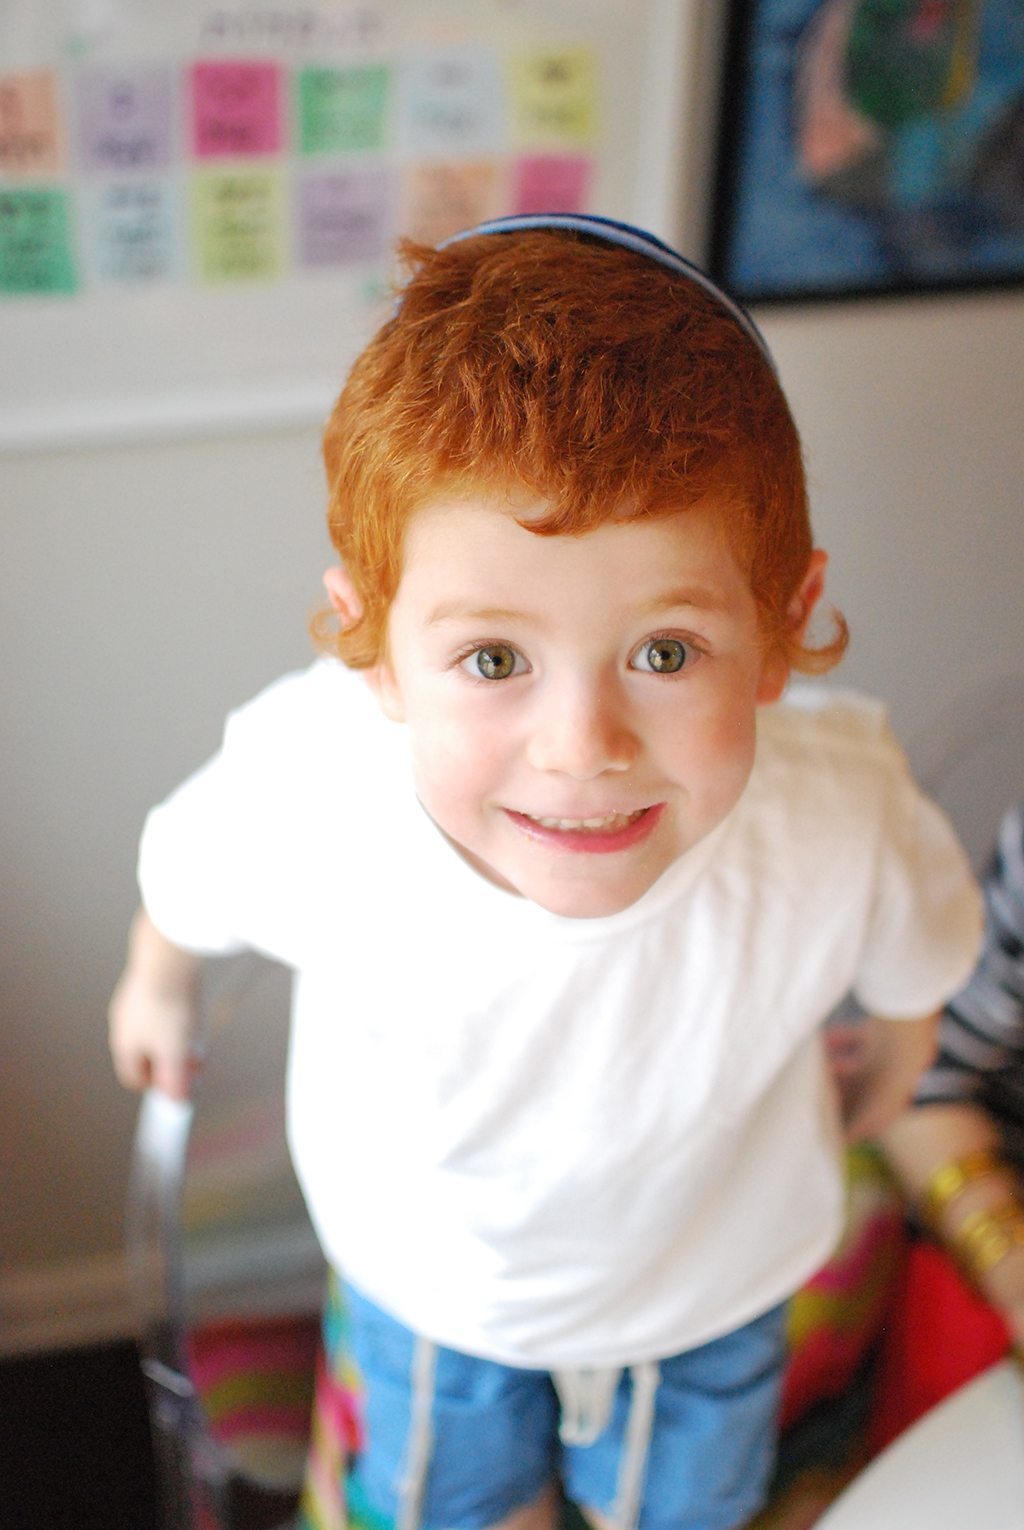 Red Head Boy Excited